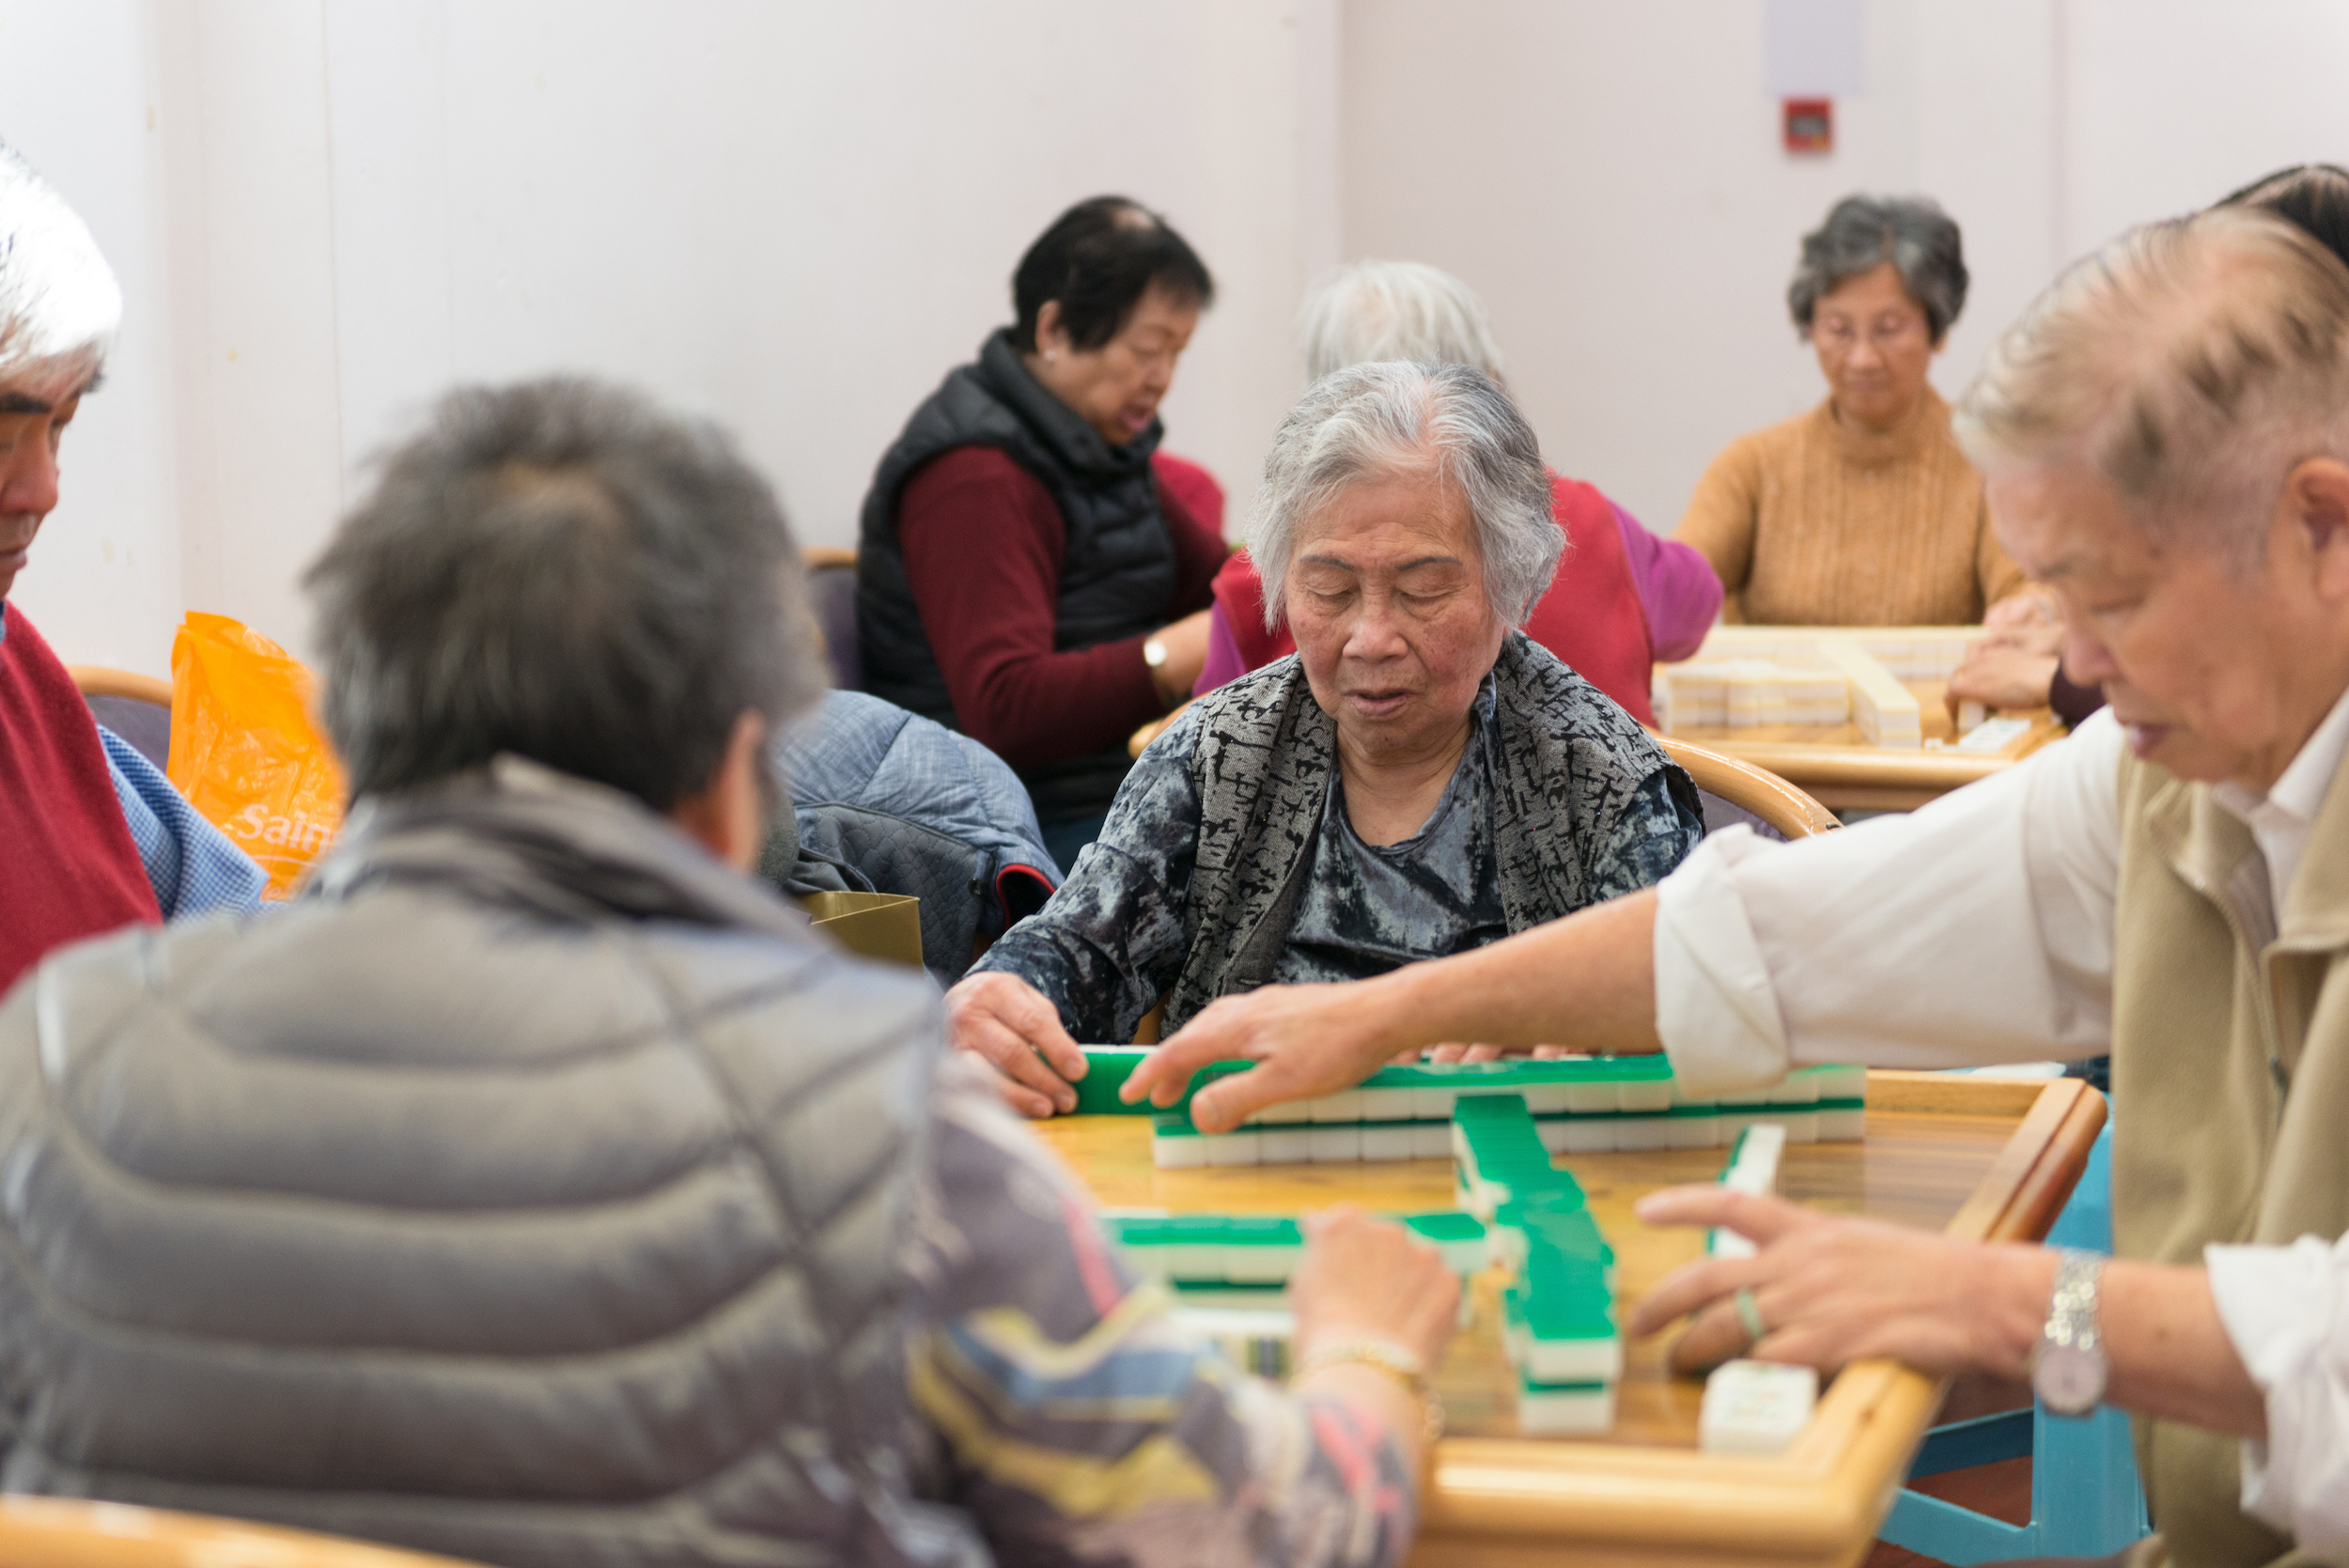 Scene of 8 people playing a table top tile game in groups of four